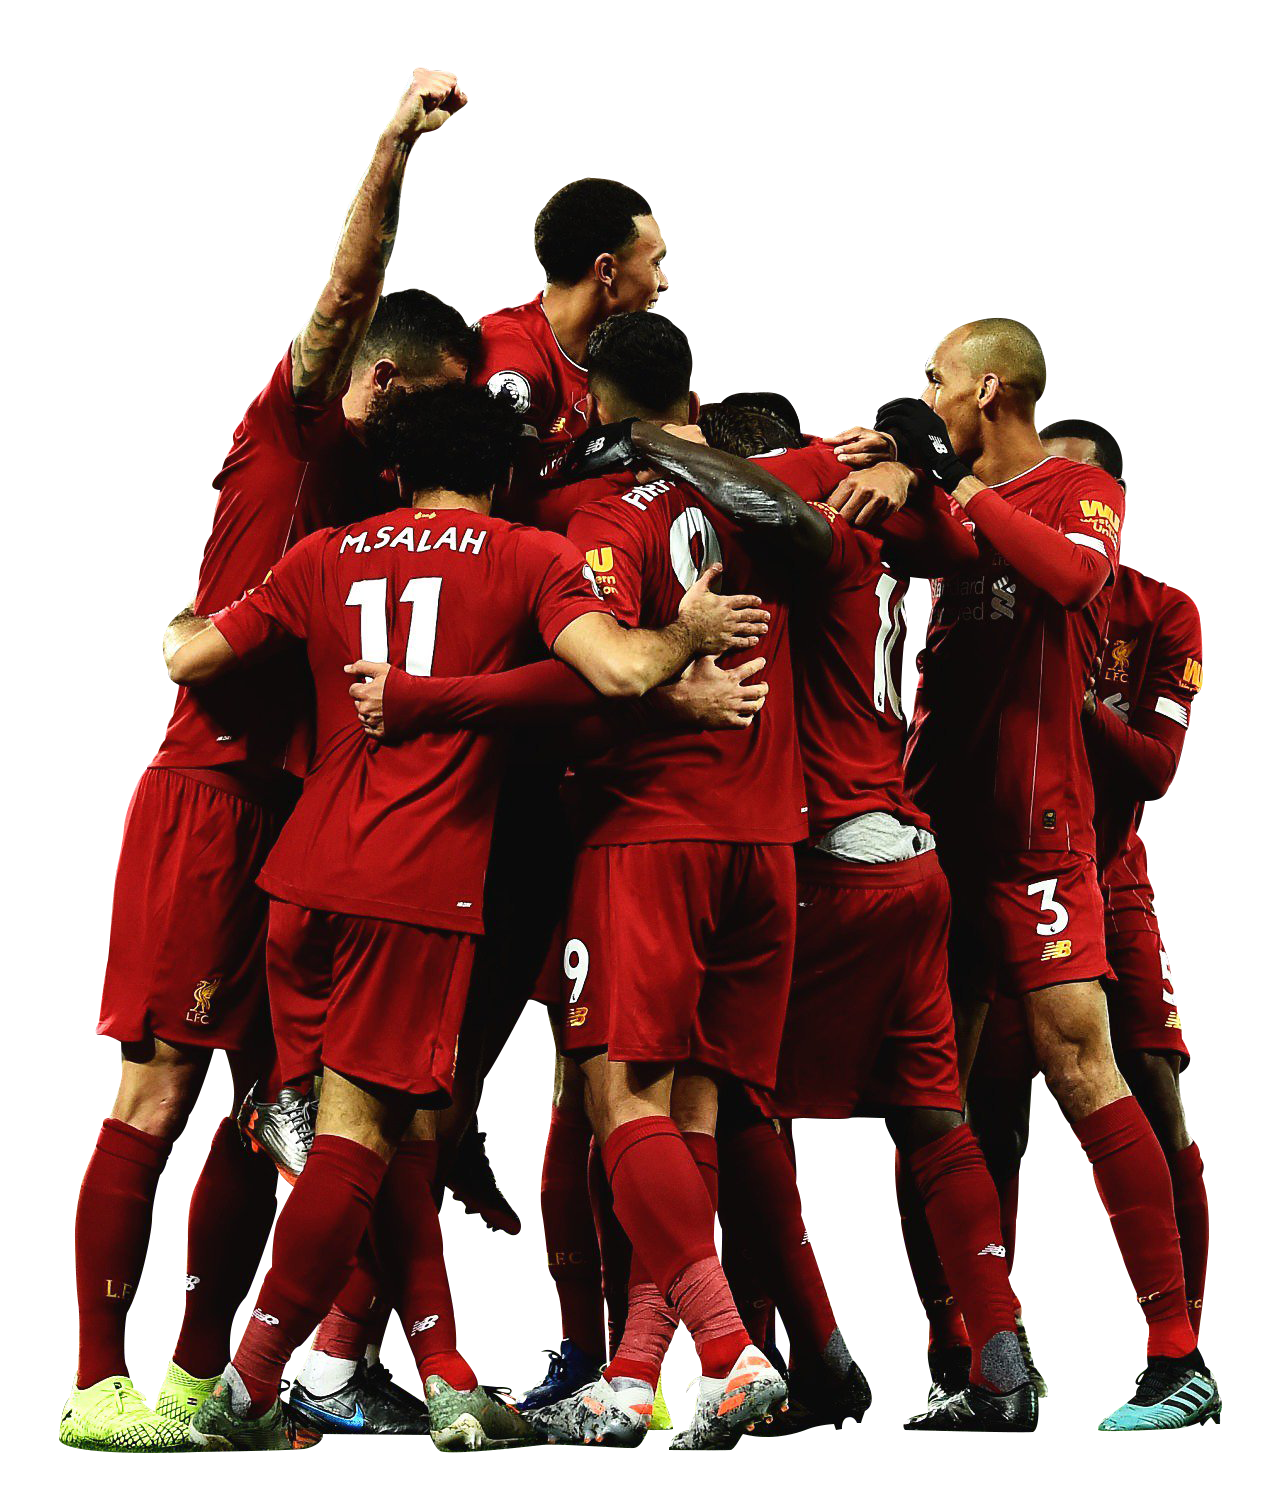 Liverpool Fc Team Football Render 65109 Footyrenders